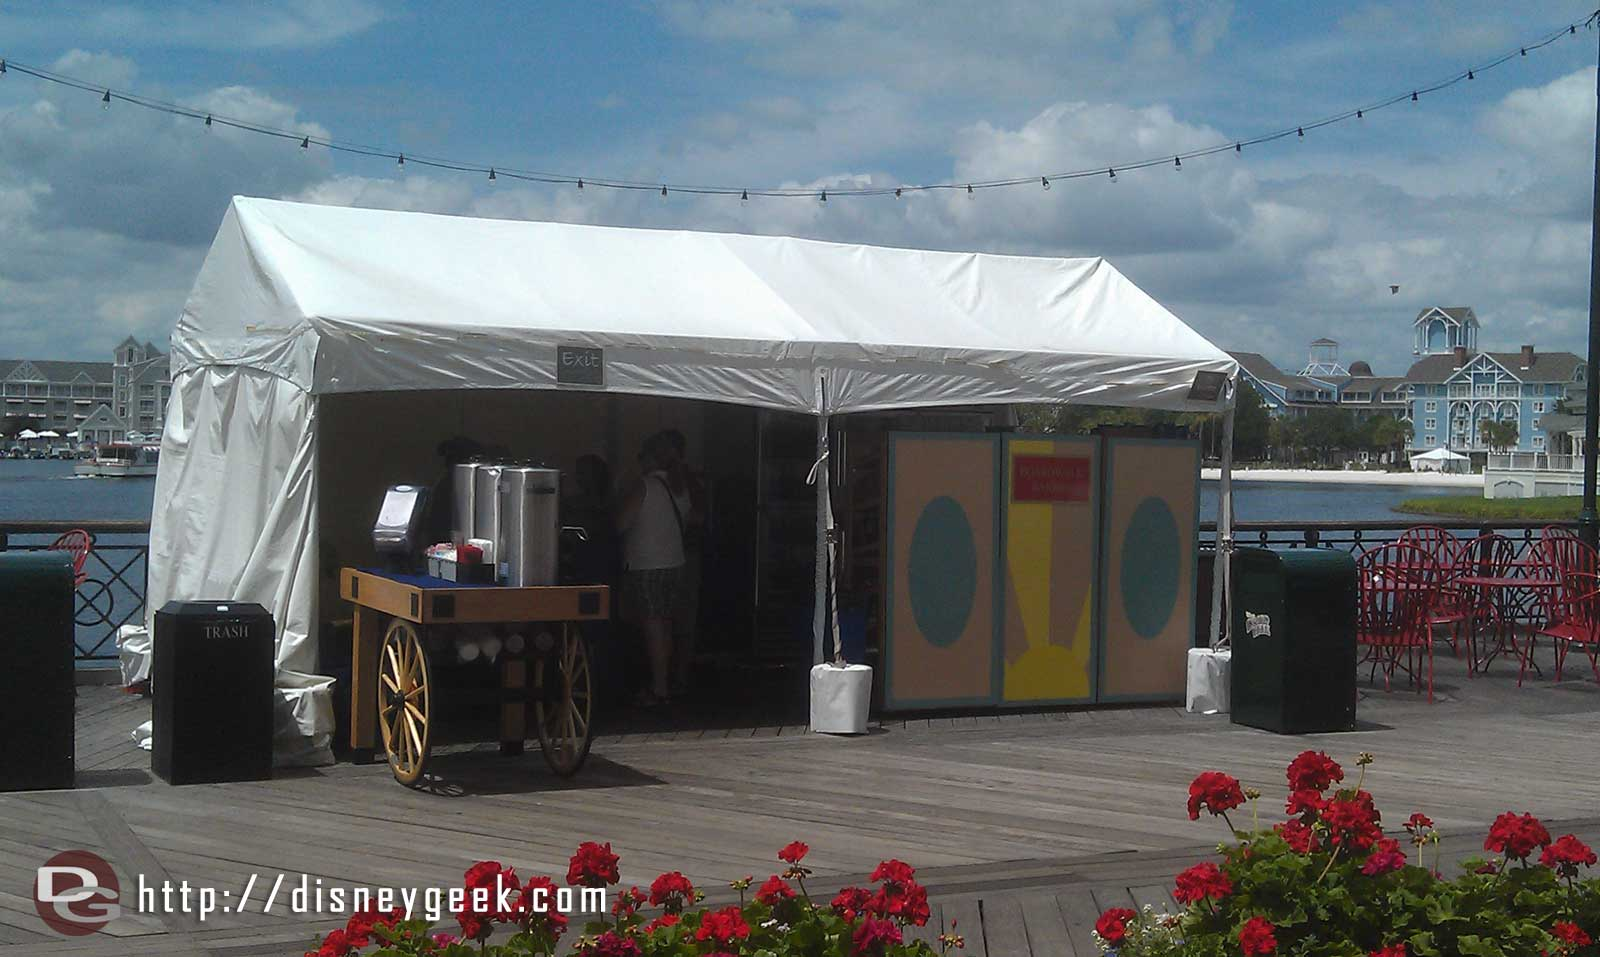 The Boardwalk Bakery is in a tent on the Boardwalk during rennovations